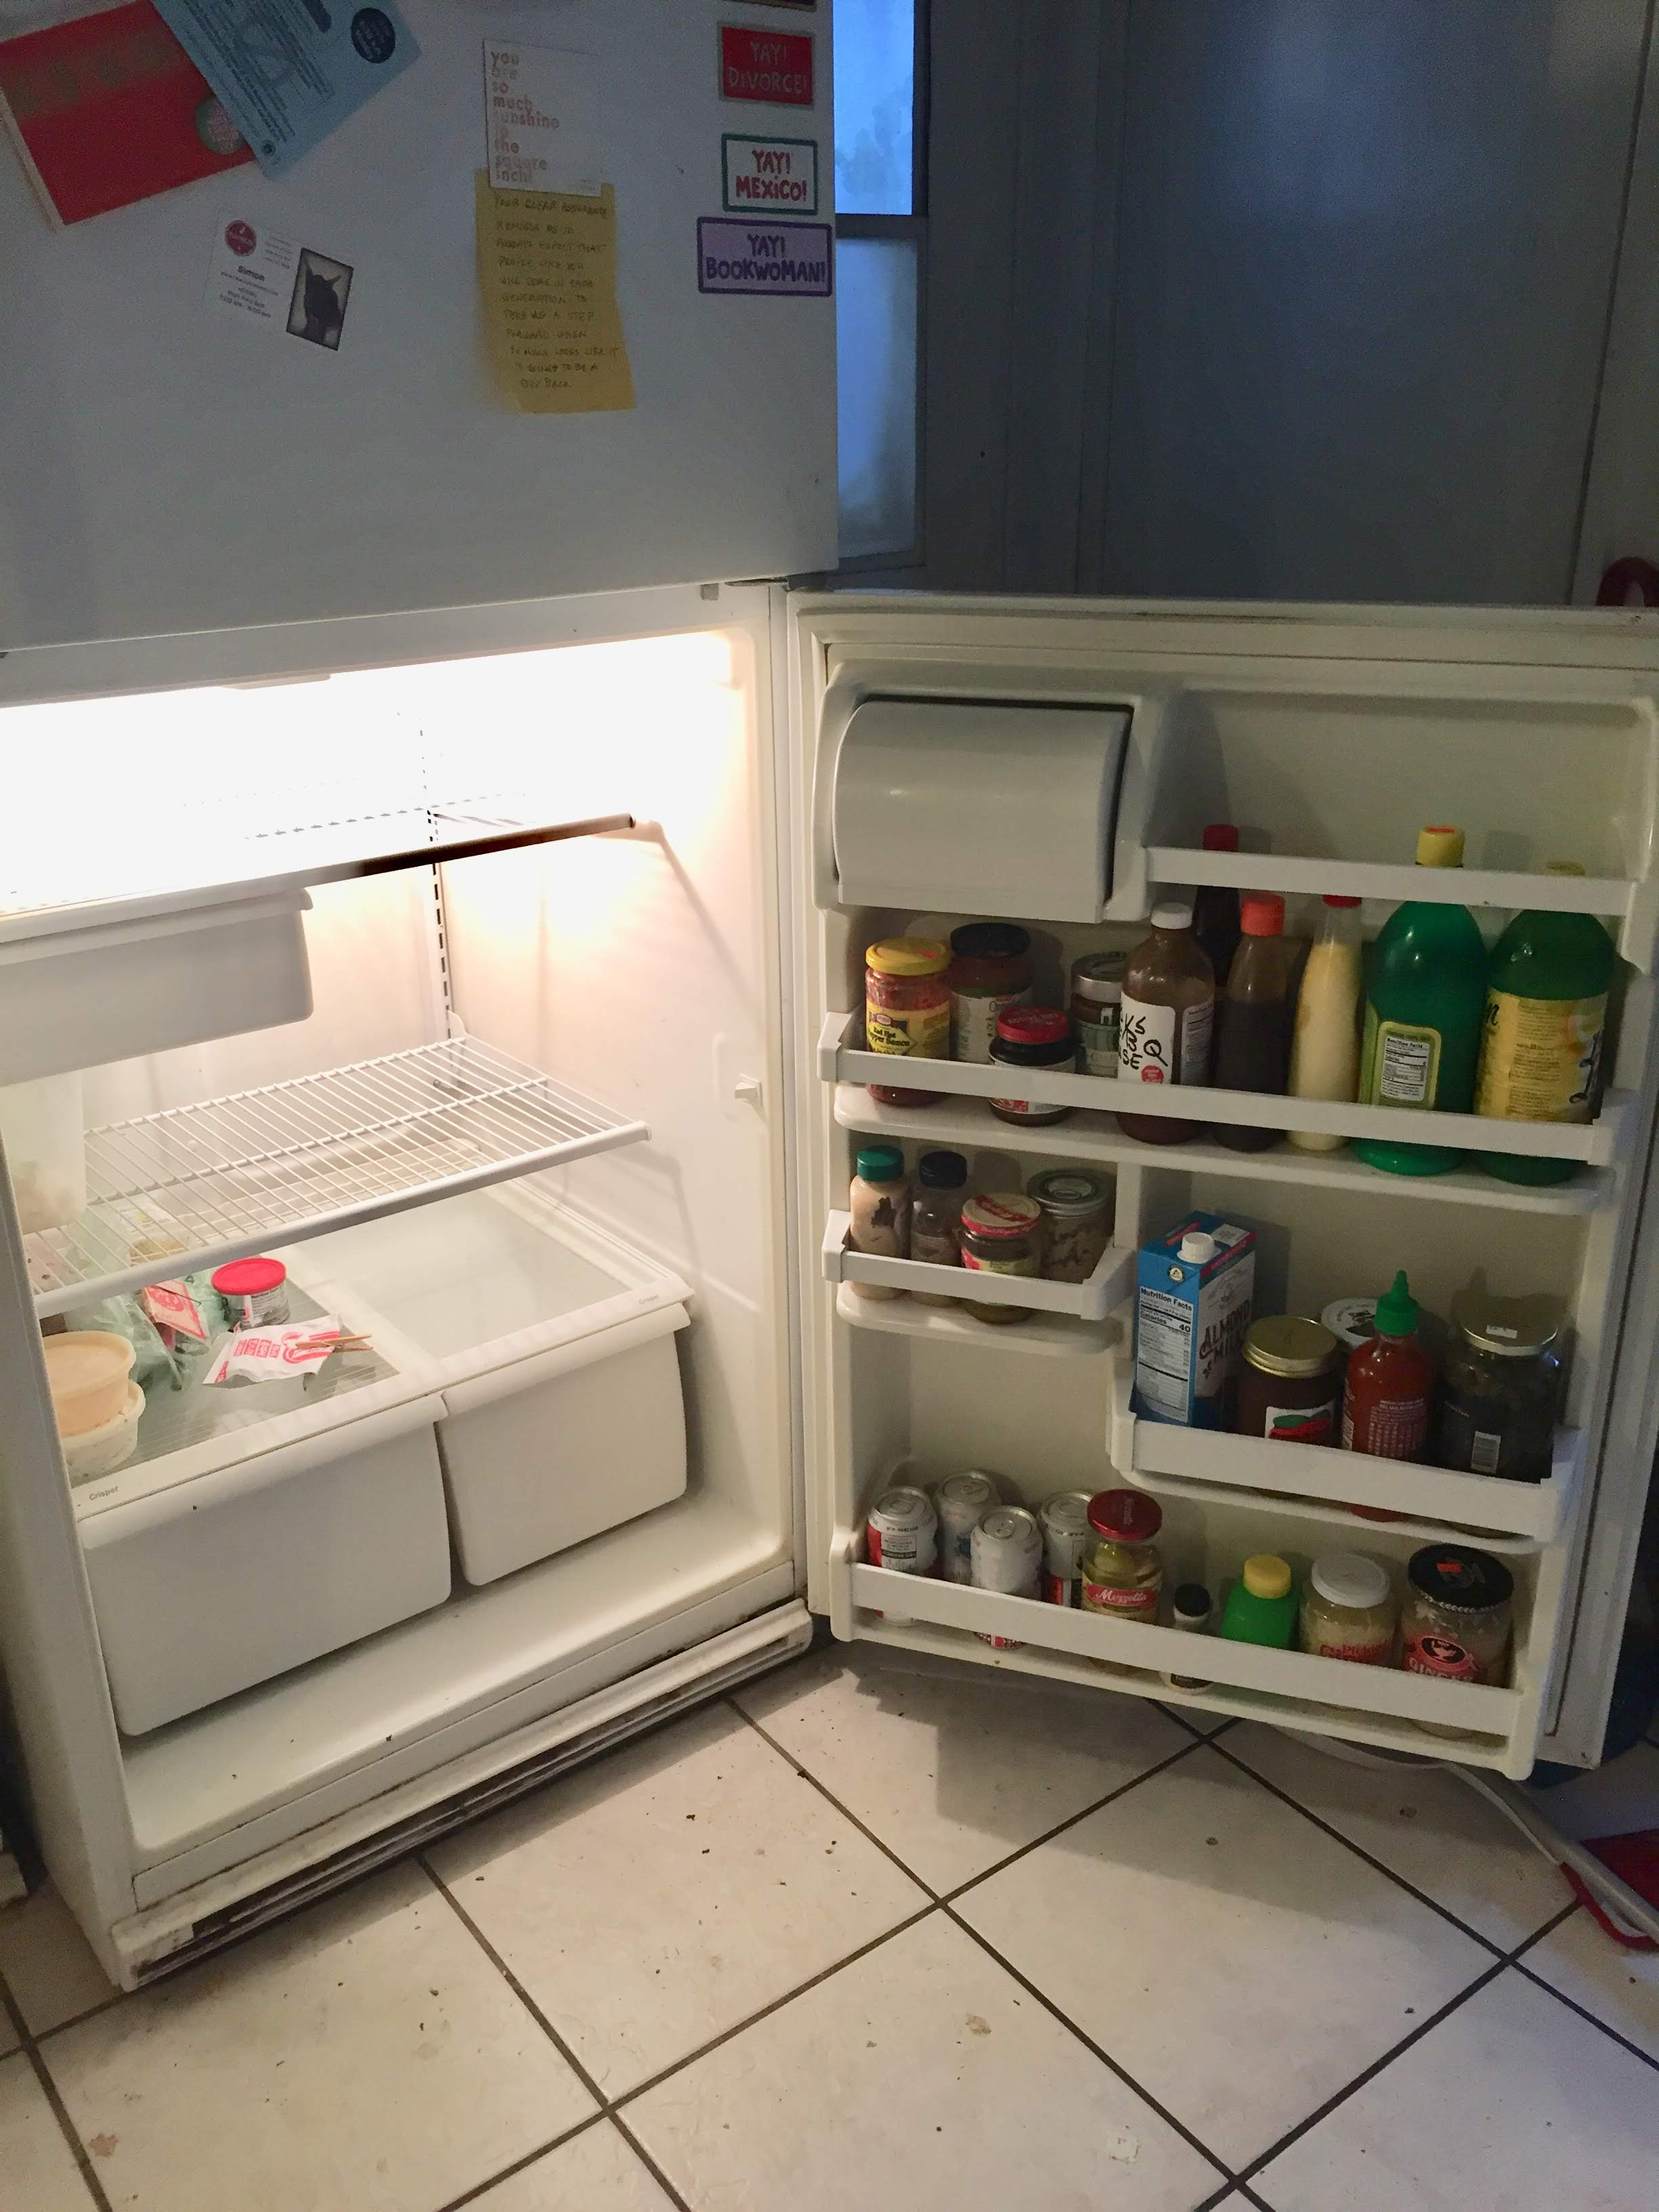 Consider yourself lucky that I forgot to take a before picture of the fridge.